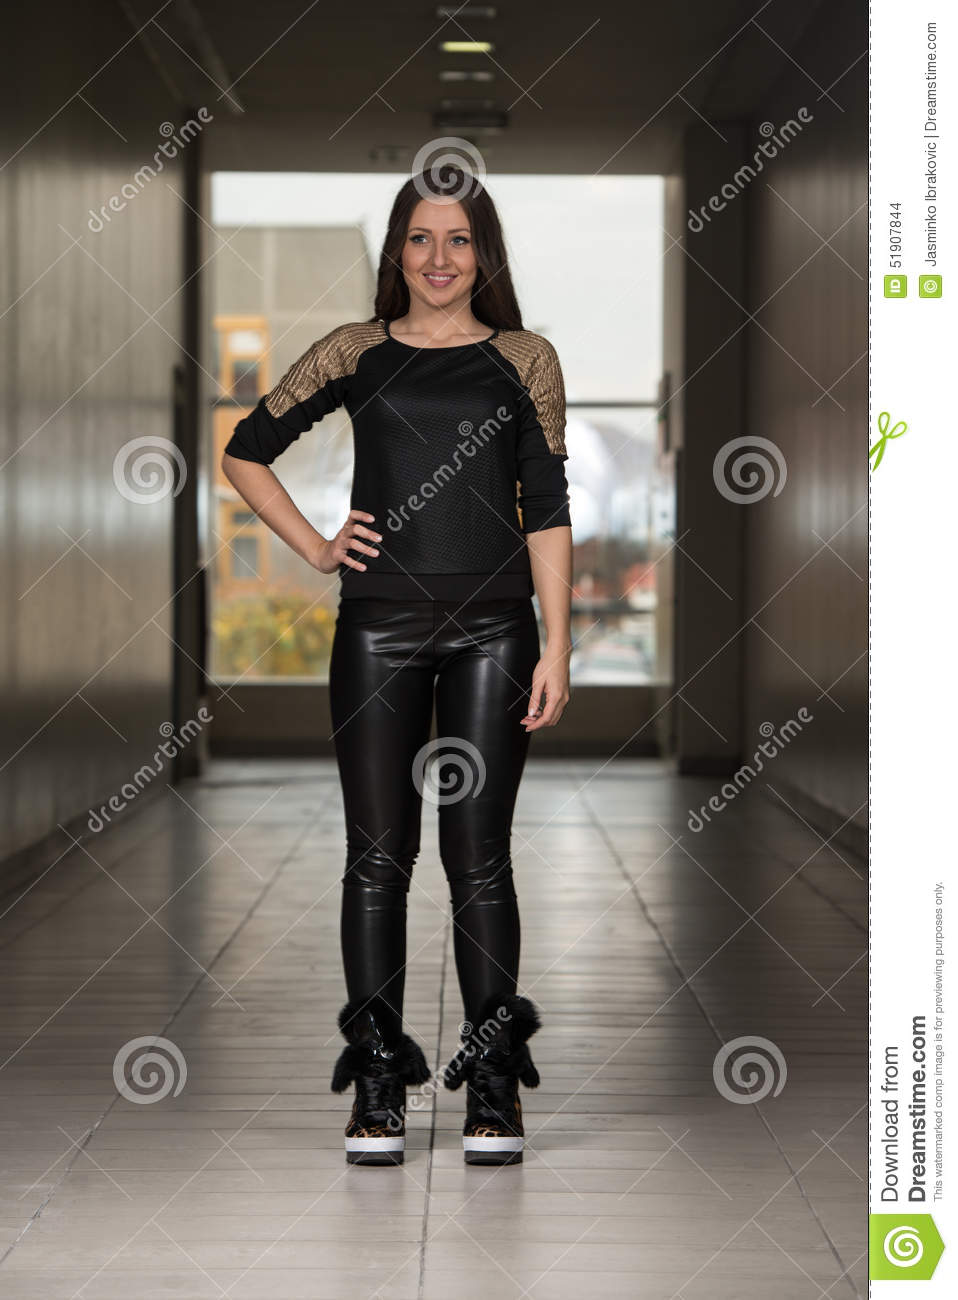 Innovative   Arrogant German Women In Leather Susan Hoecke In Leather Pants